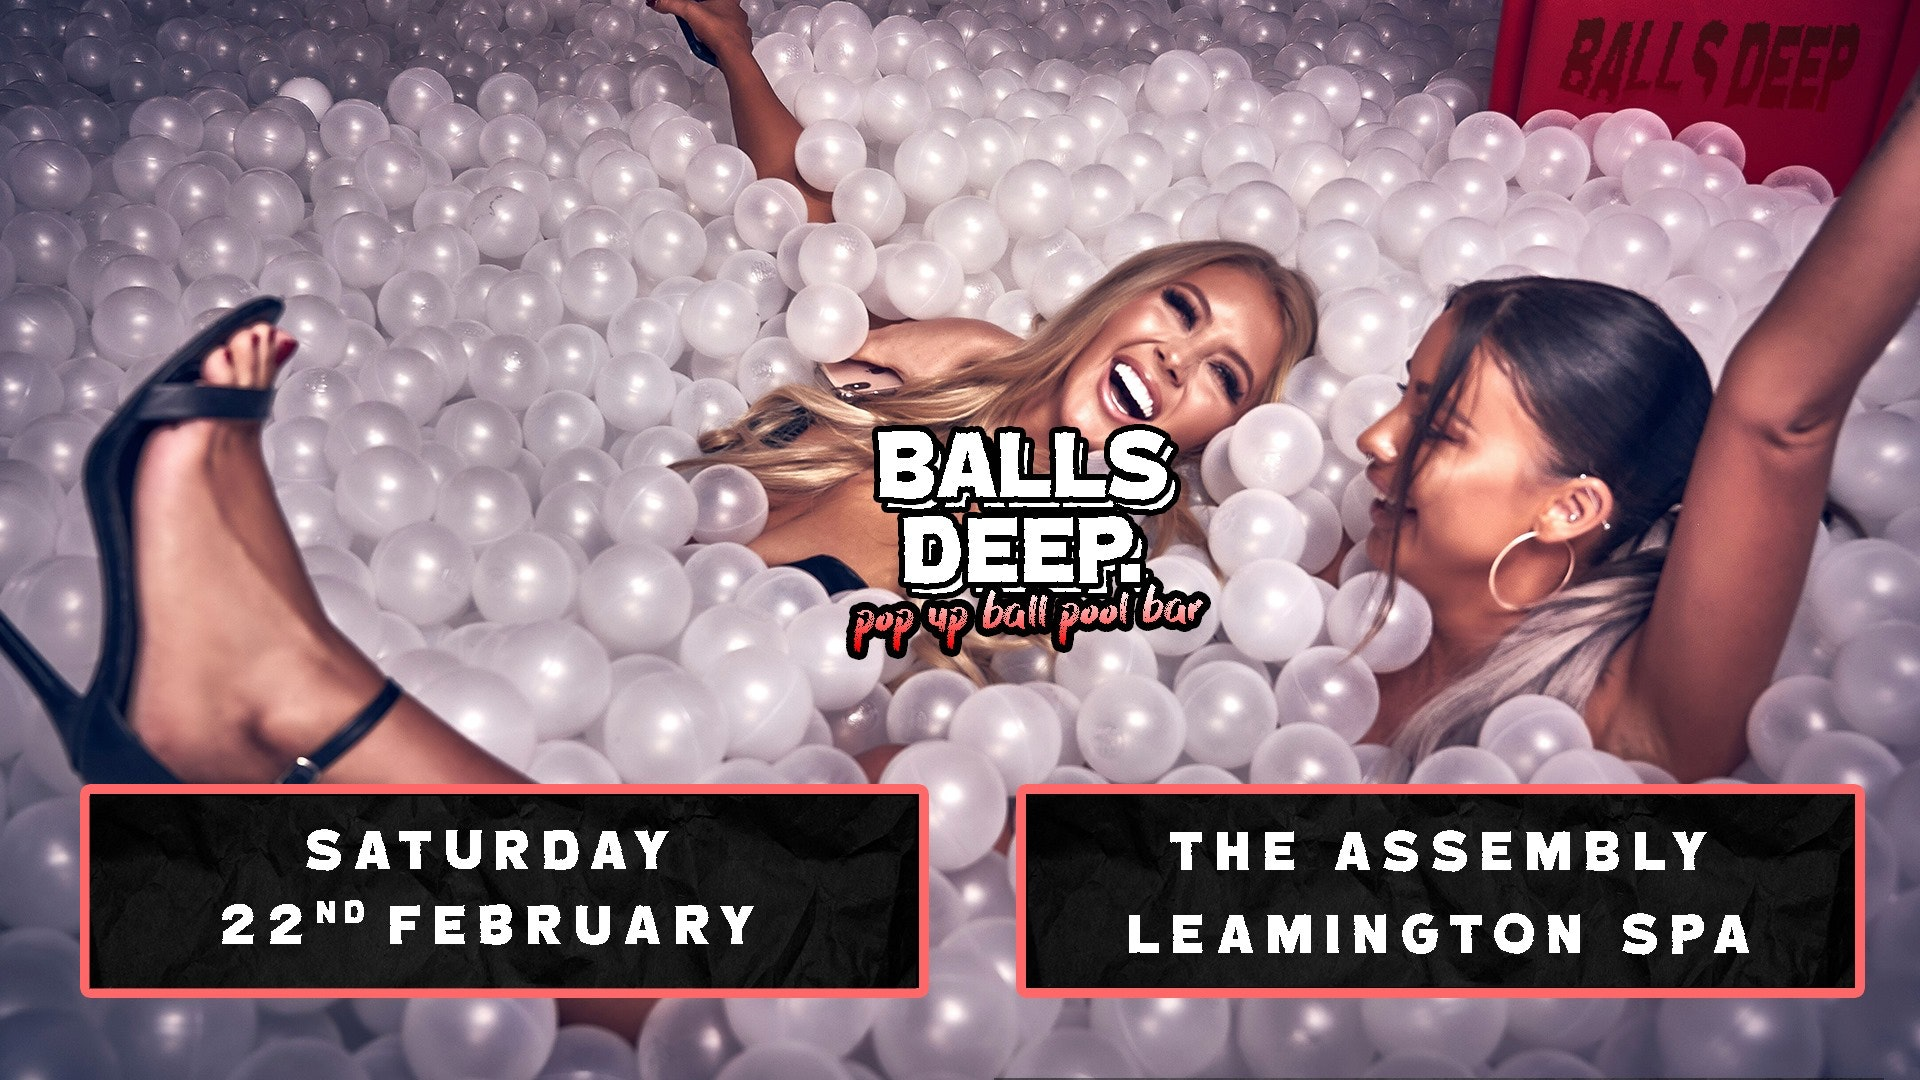 Pop Up Ball-Pool Bar Comes to Leamington Spa!